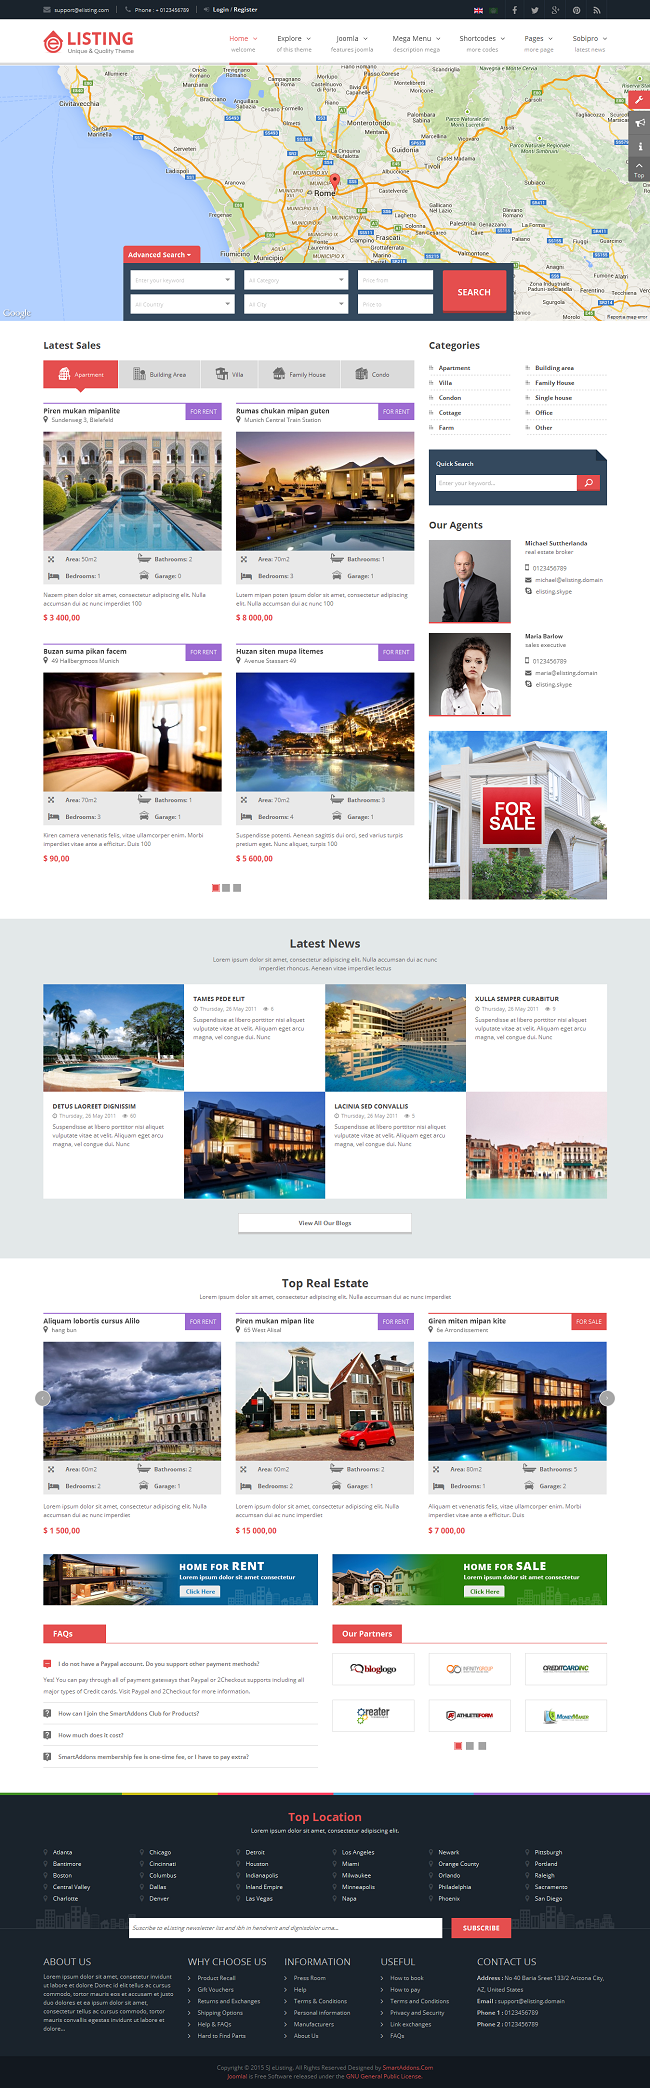 SJ eListing - Responsive Joomla Estate Template - 07_index-red.png